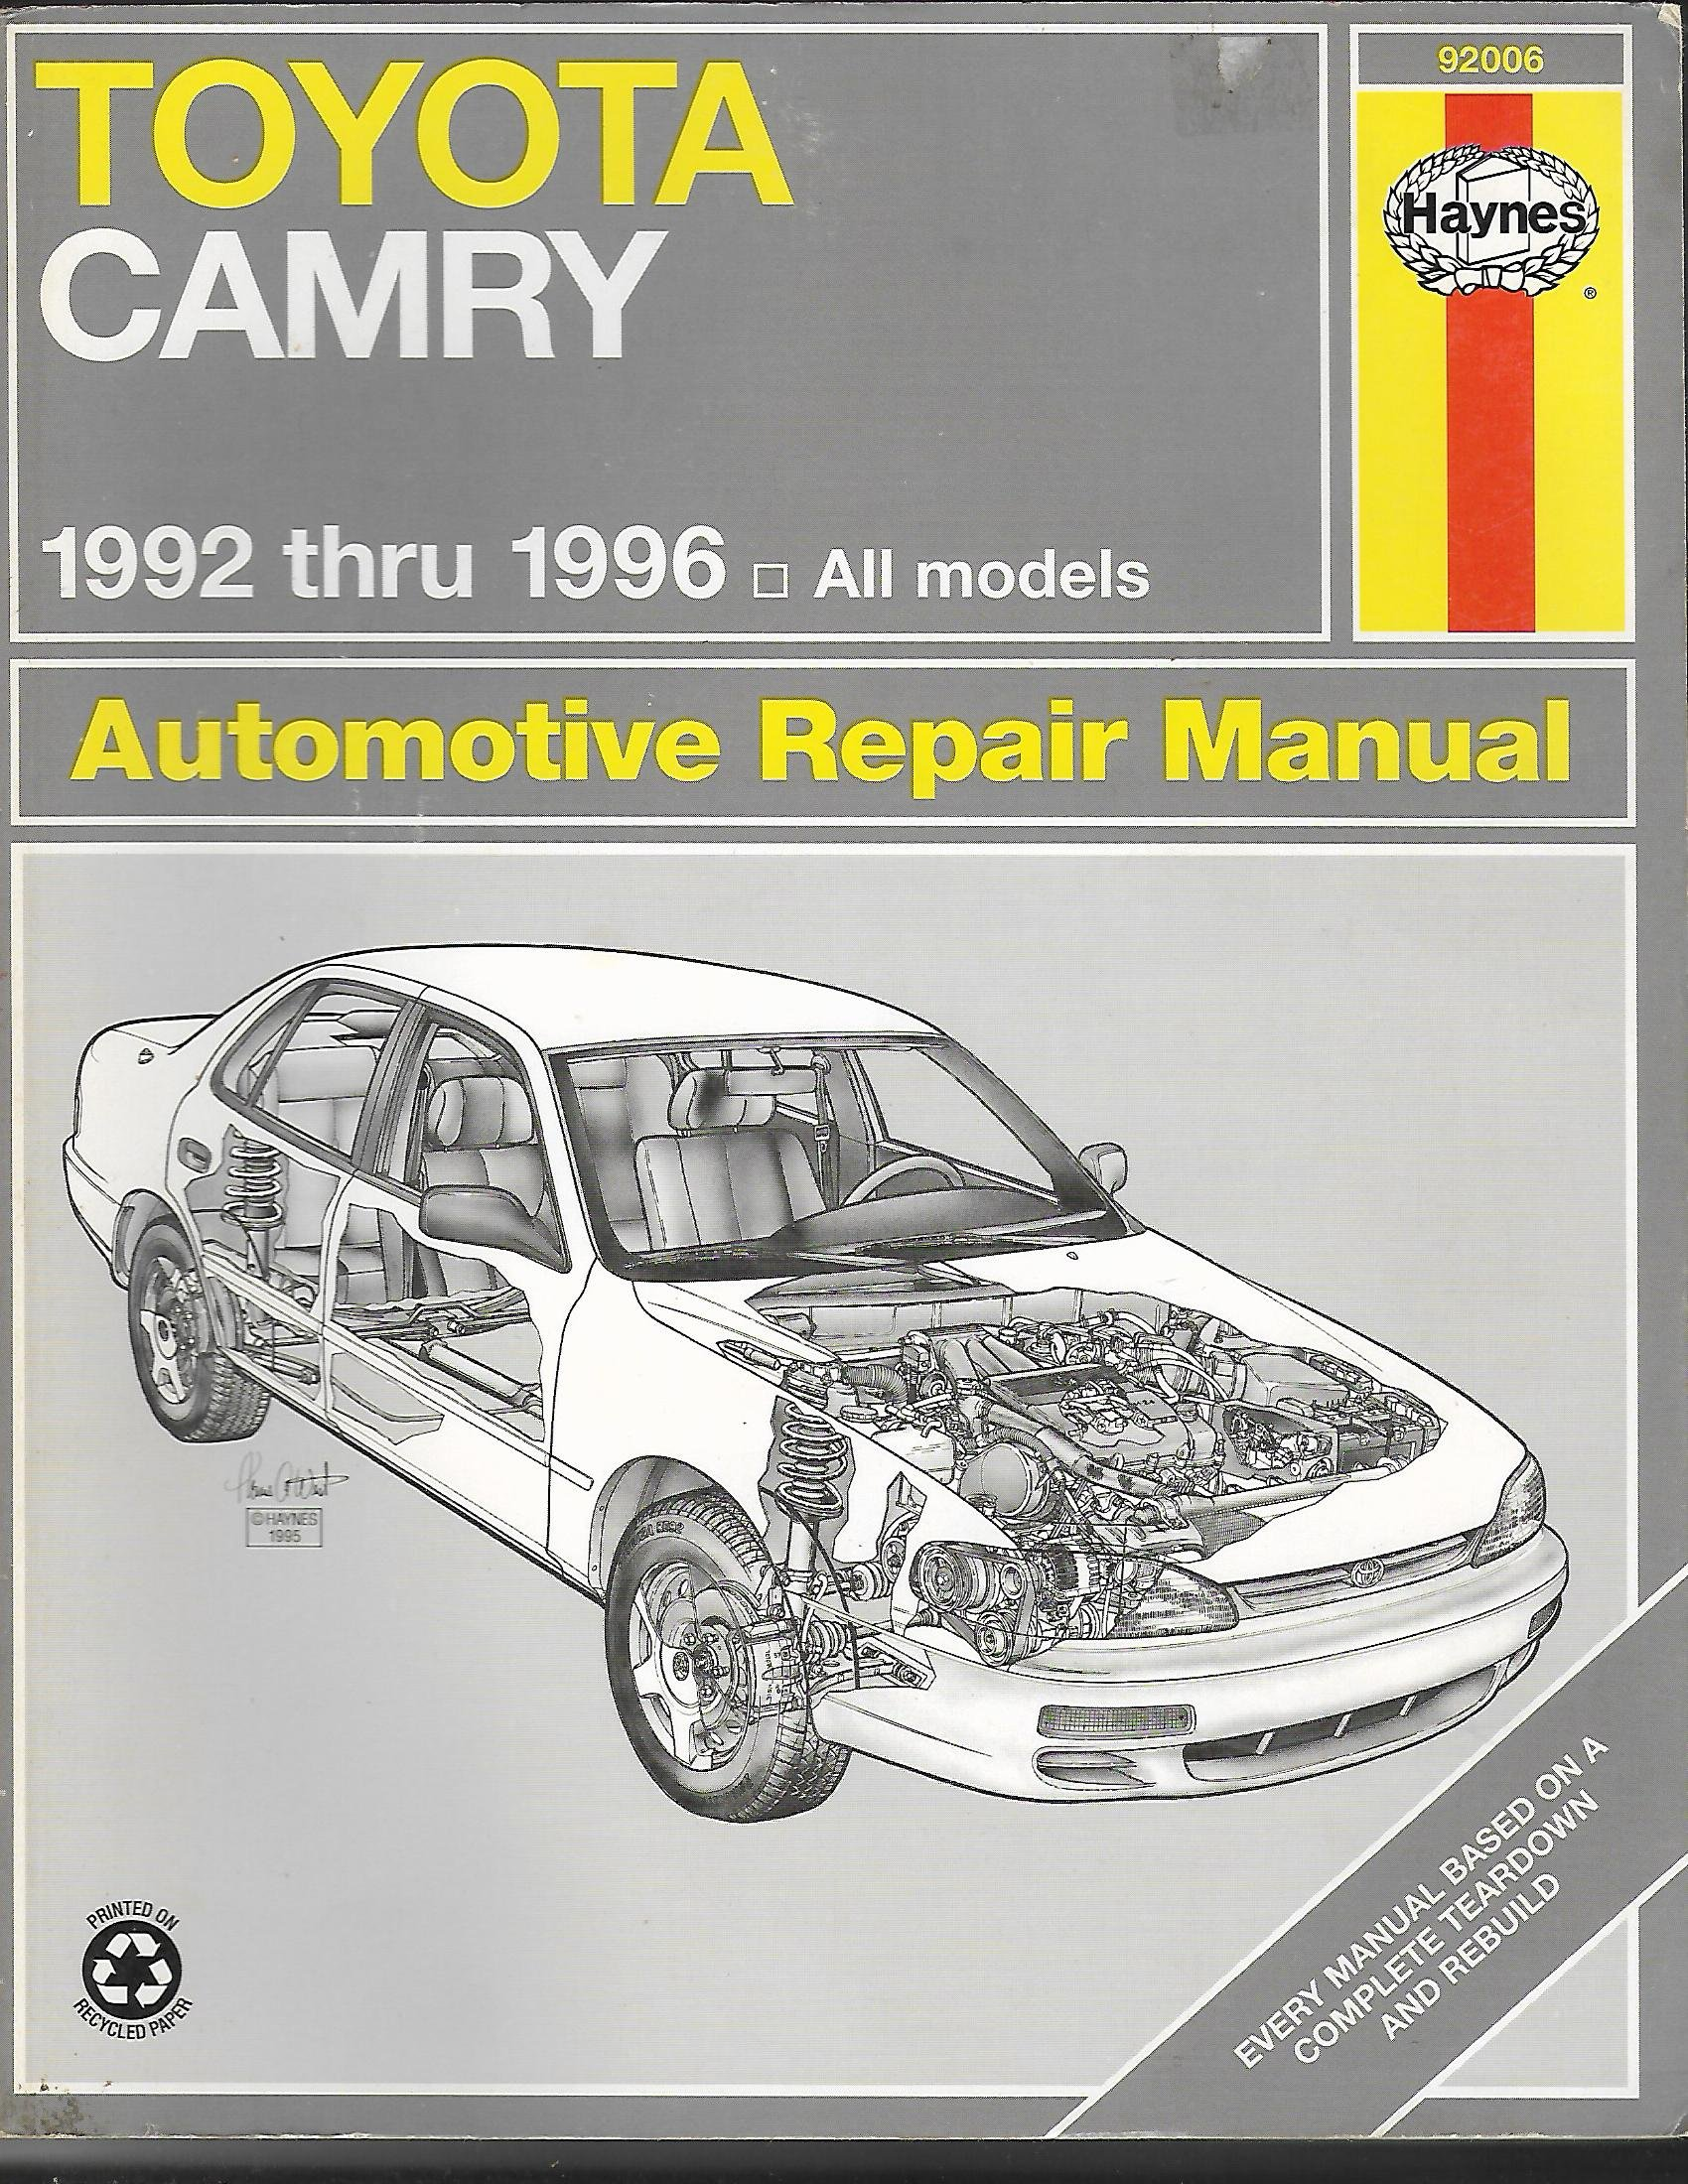 toyota camry automotive repair manual 1992 through 1996 hayne s rh amazon com 2009 Toyota Camry Service Manual Toyota Camry Manual PDF